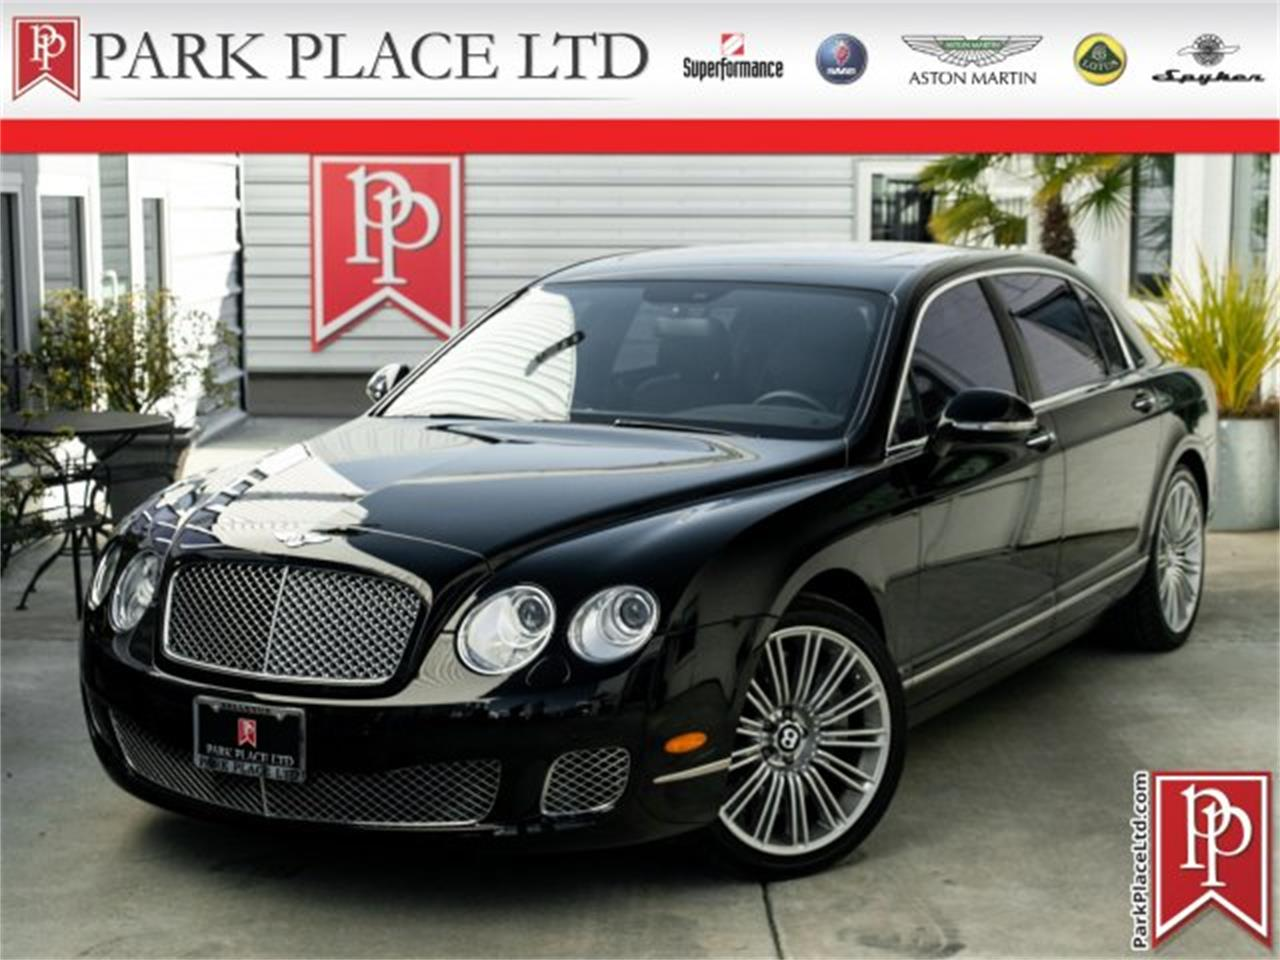 Large Picture of 2010 Bentley Continental Flying Spur located in Washington - $59,950.00 Offered by Park Place Ltd - PSB8